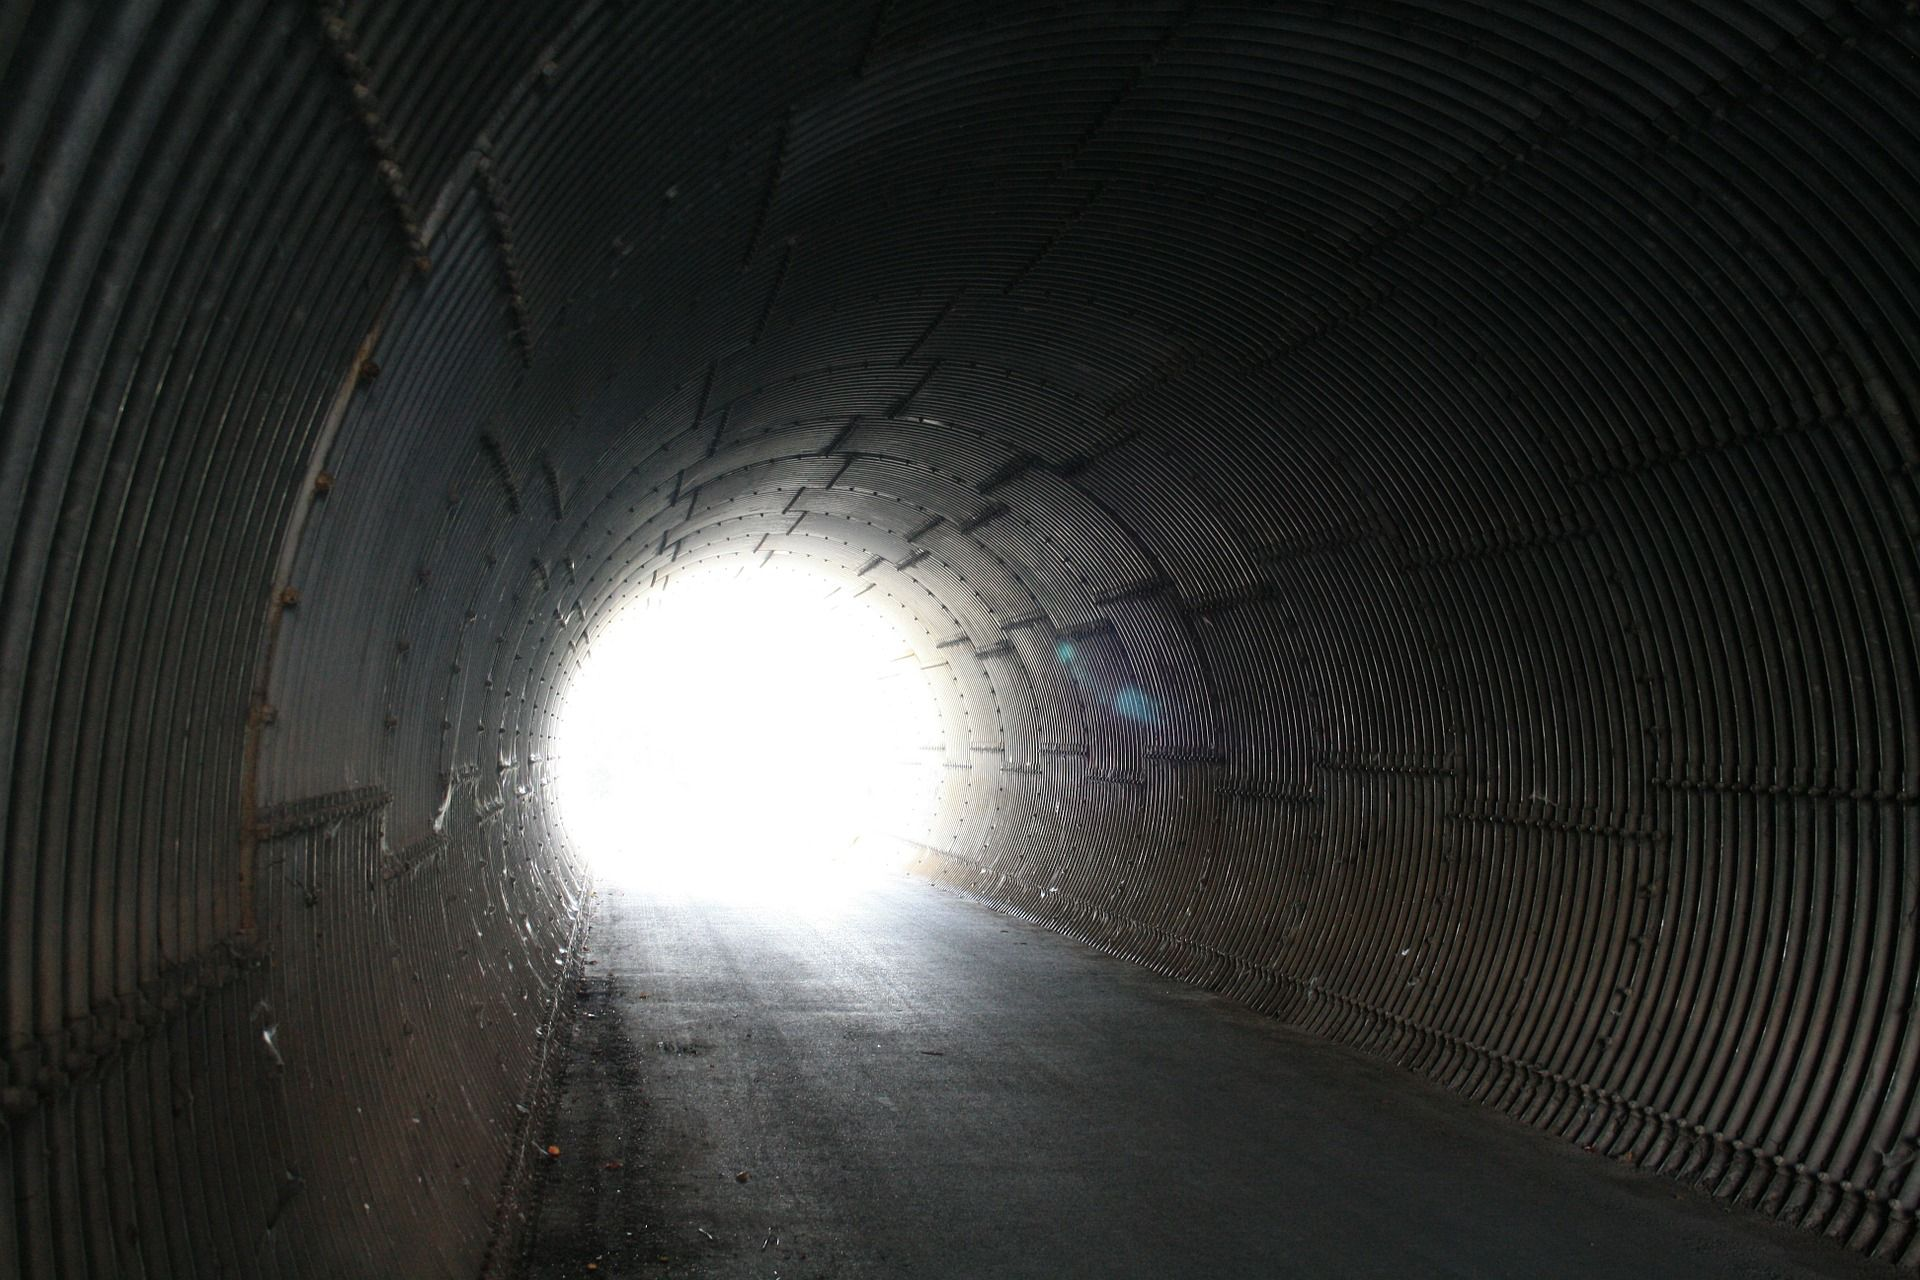 tunnel-72616_1920